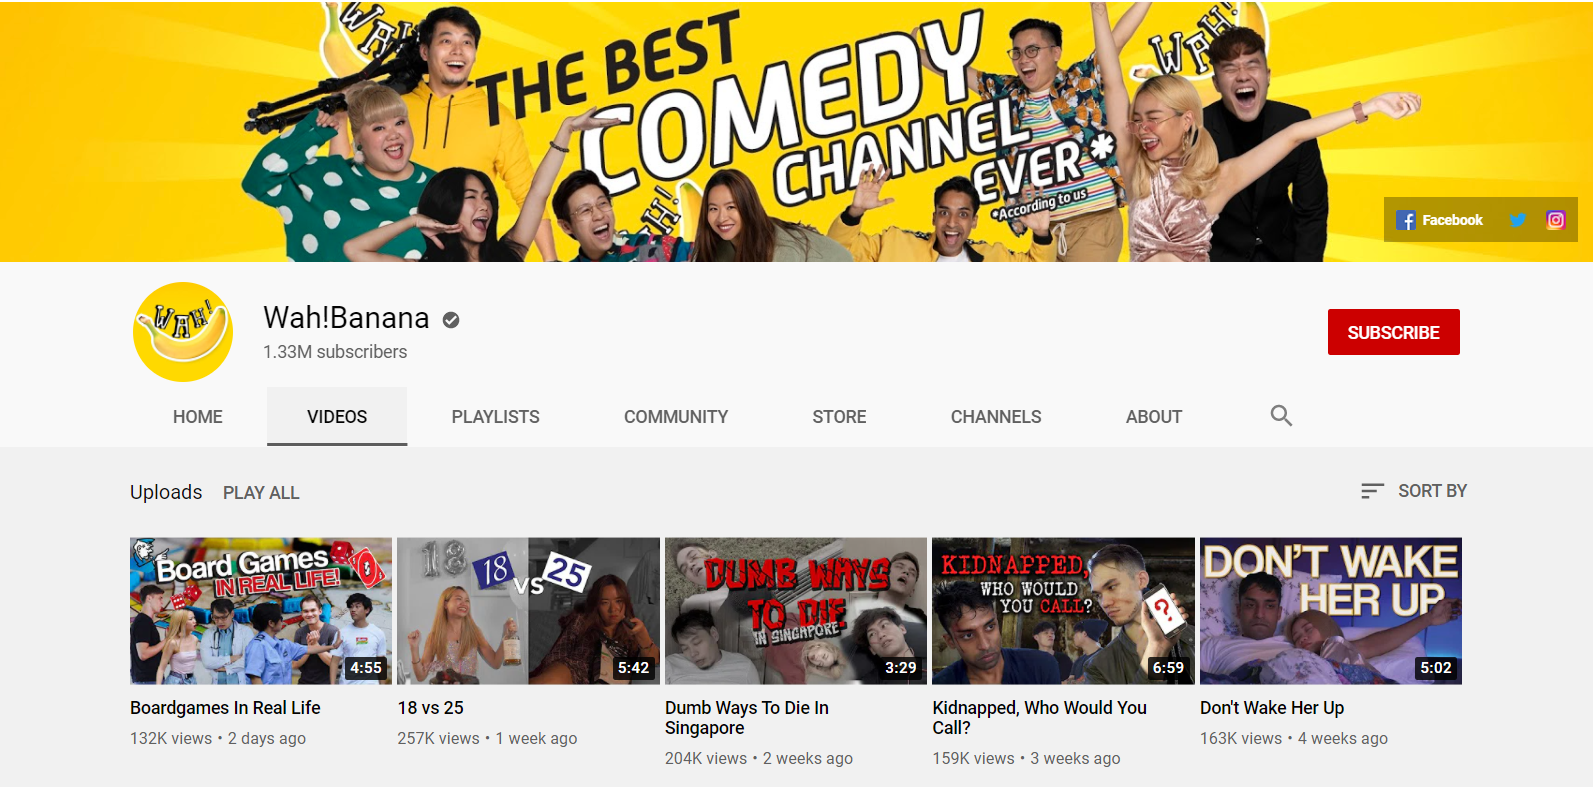 Wah!Banana YouTube Channel Page